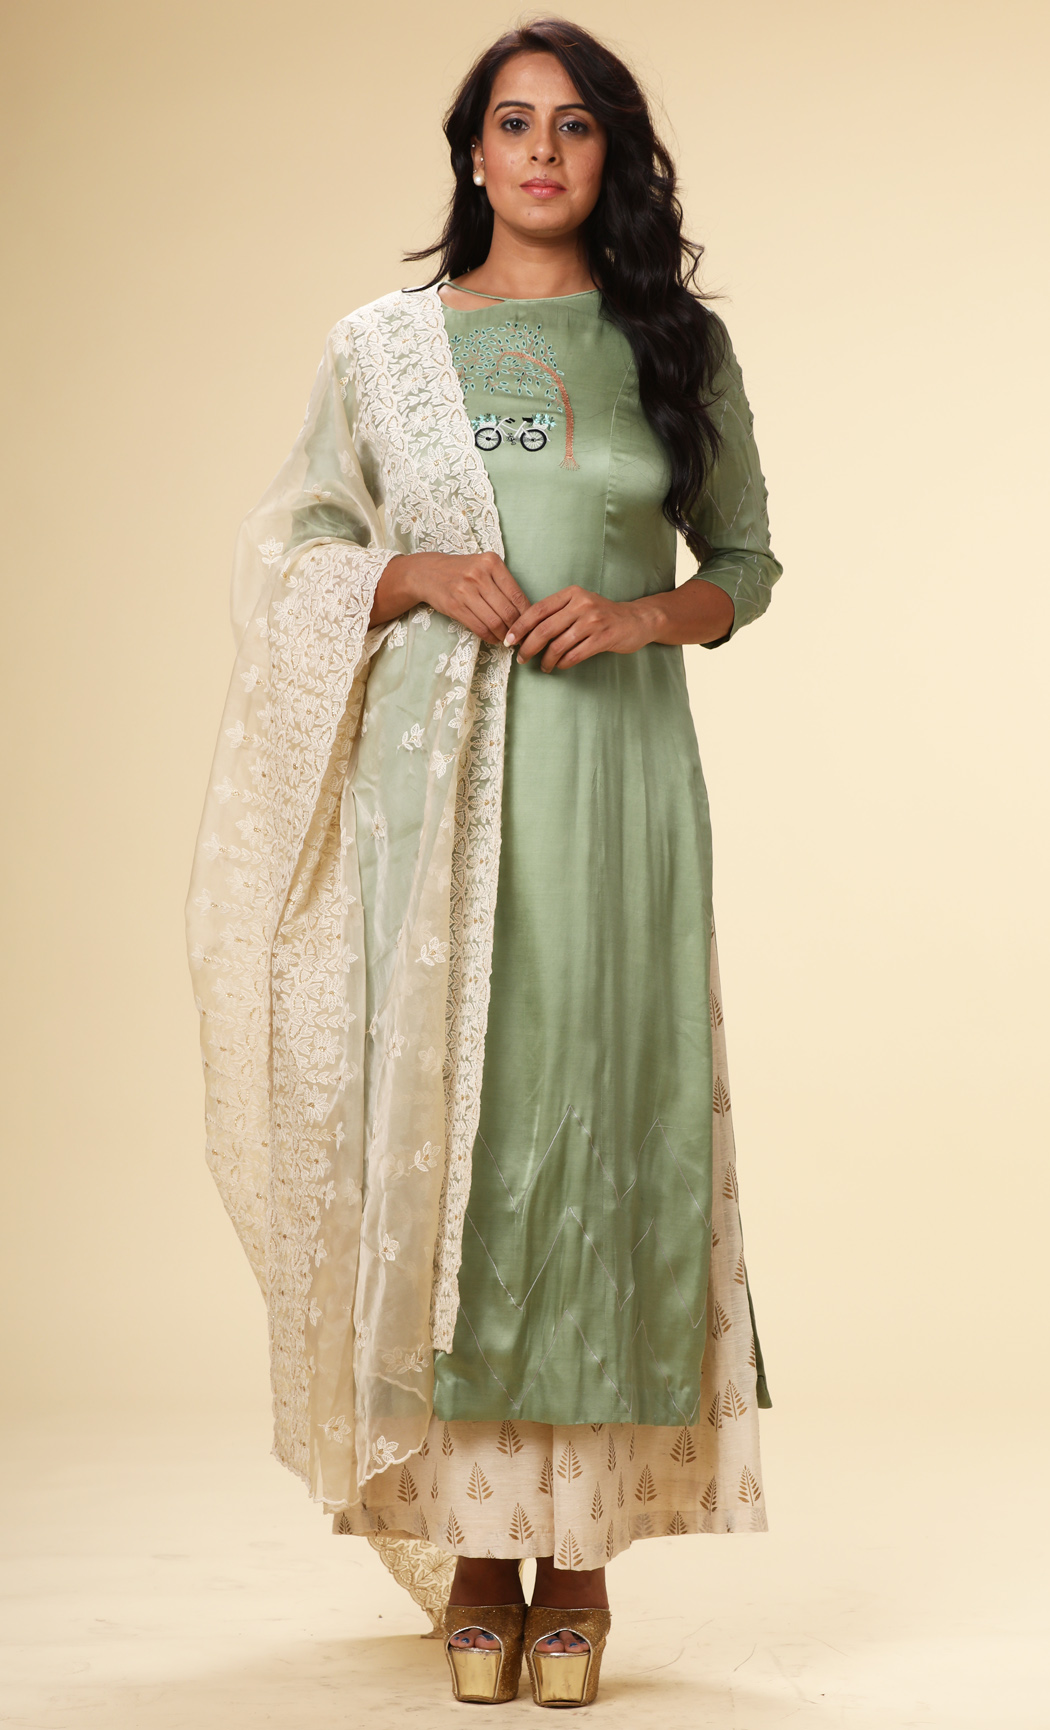 Teal Straight Kurta with an Off-White Dupatta and Pants - Buy Online